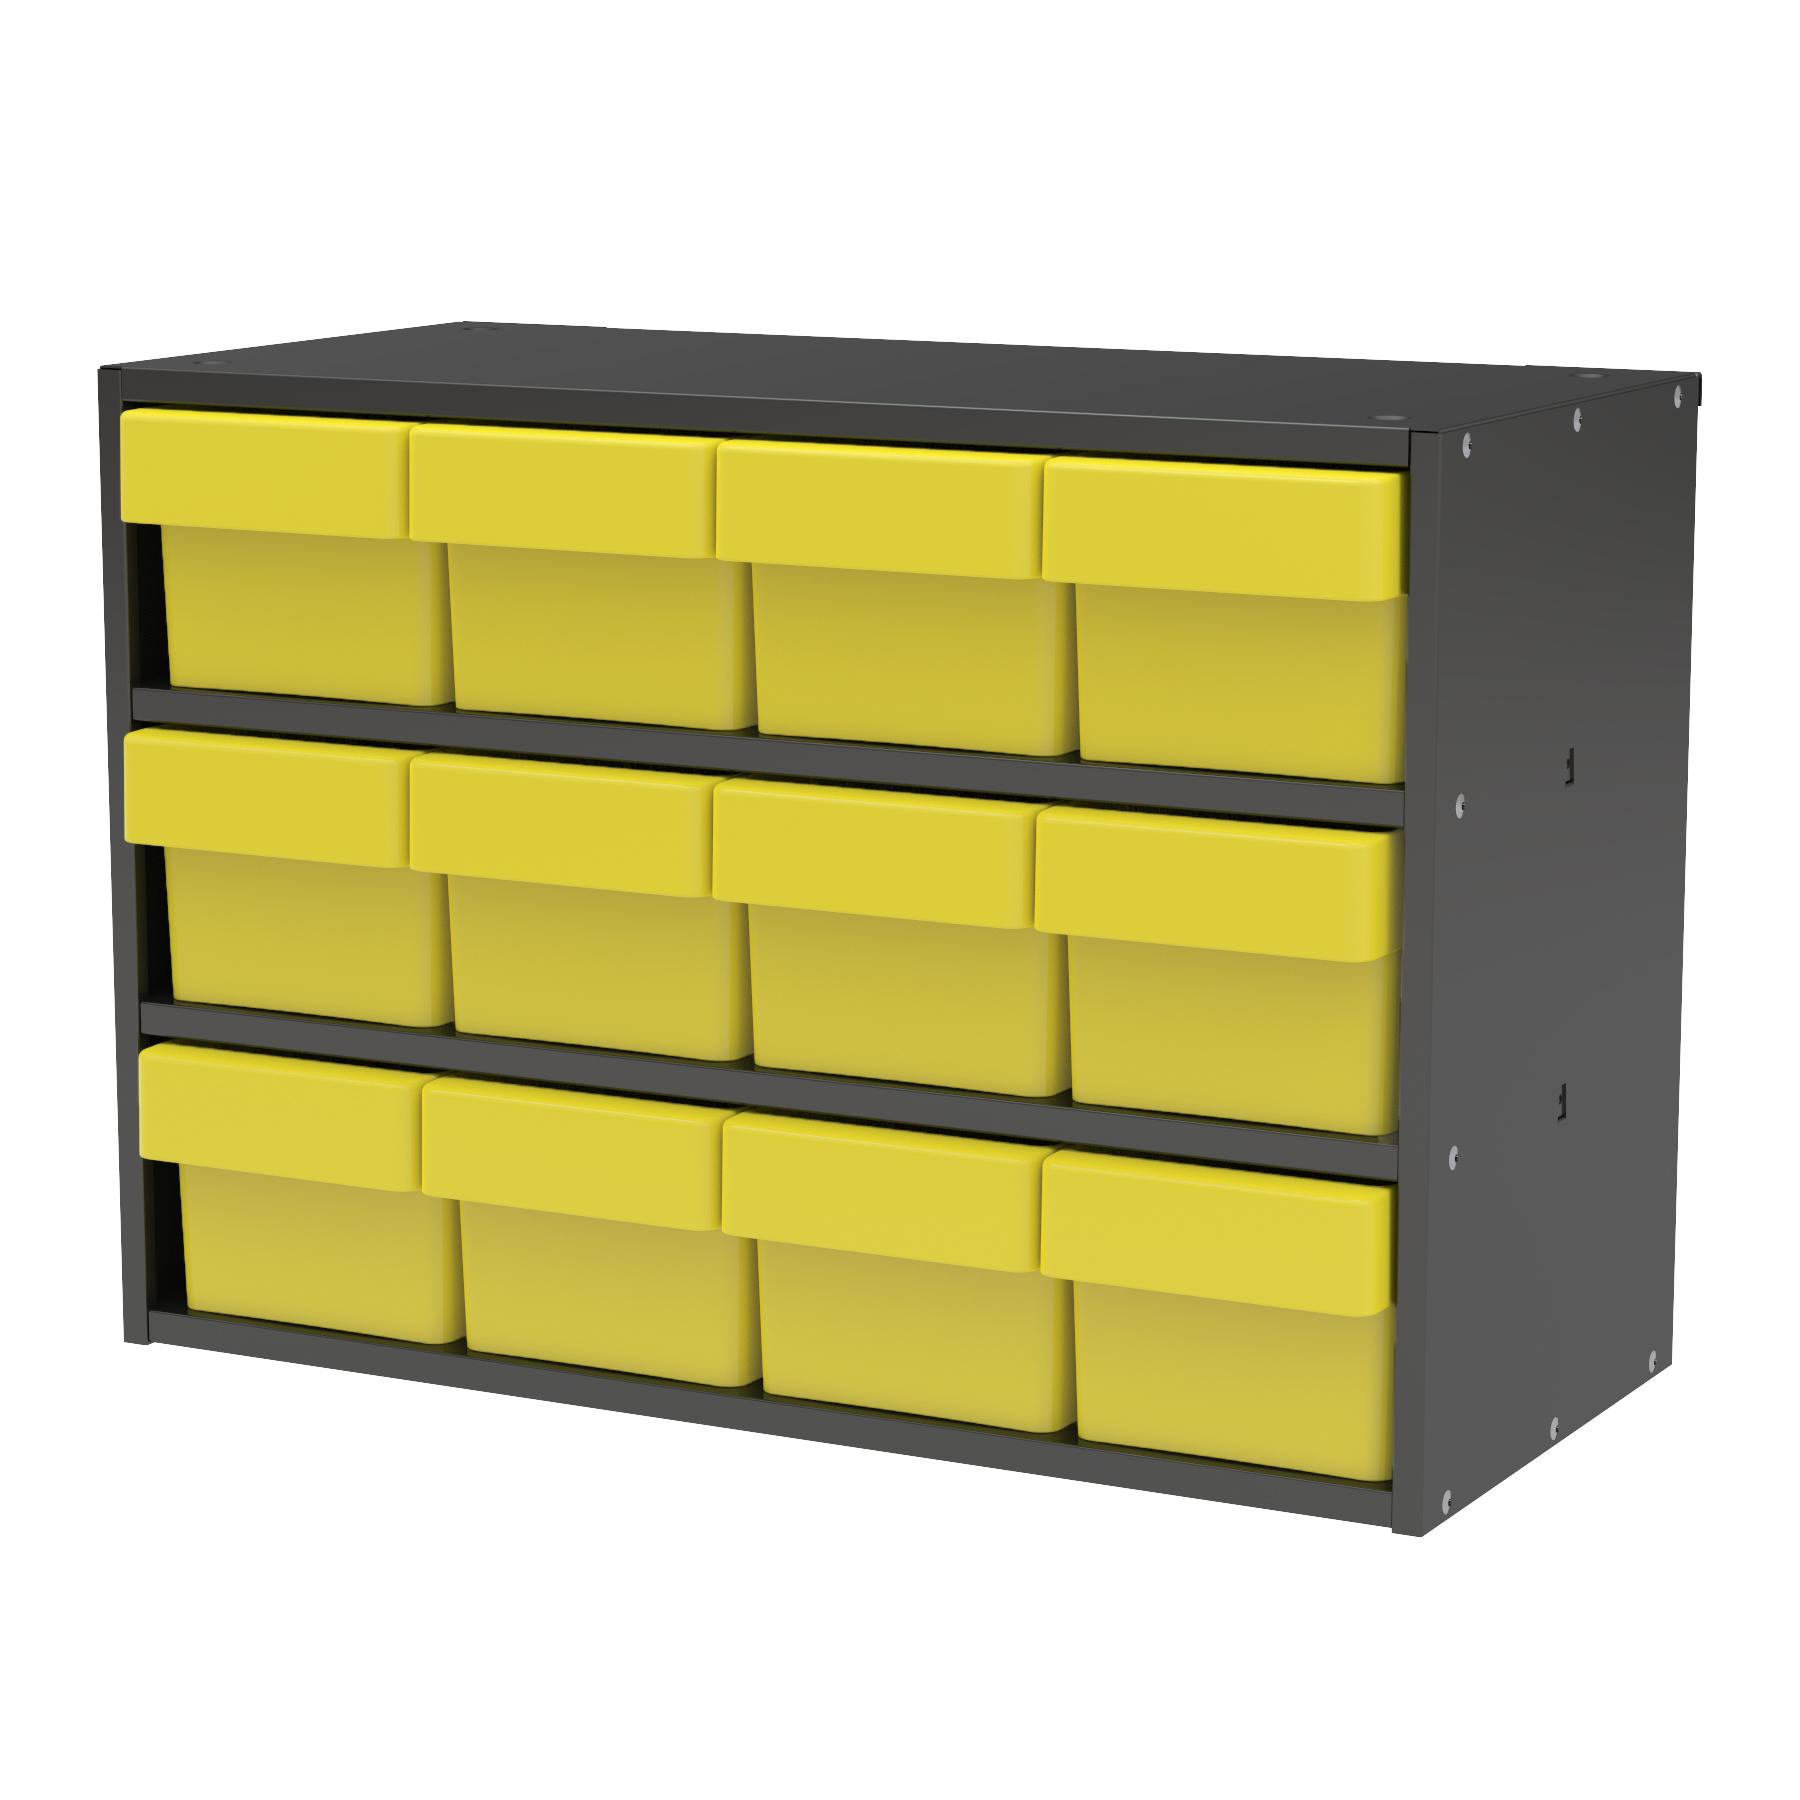 Item DISCONTINUED by Manufacturer.  Modular Cabinet, 23x11x16, 12 Drawers, Gray/Yellow (AD2311C62YEL).  This item sold in carton quantities of 1.